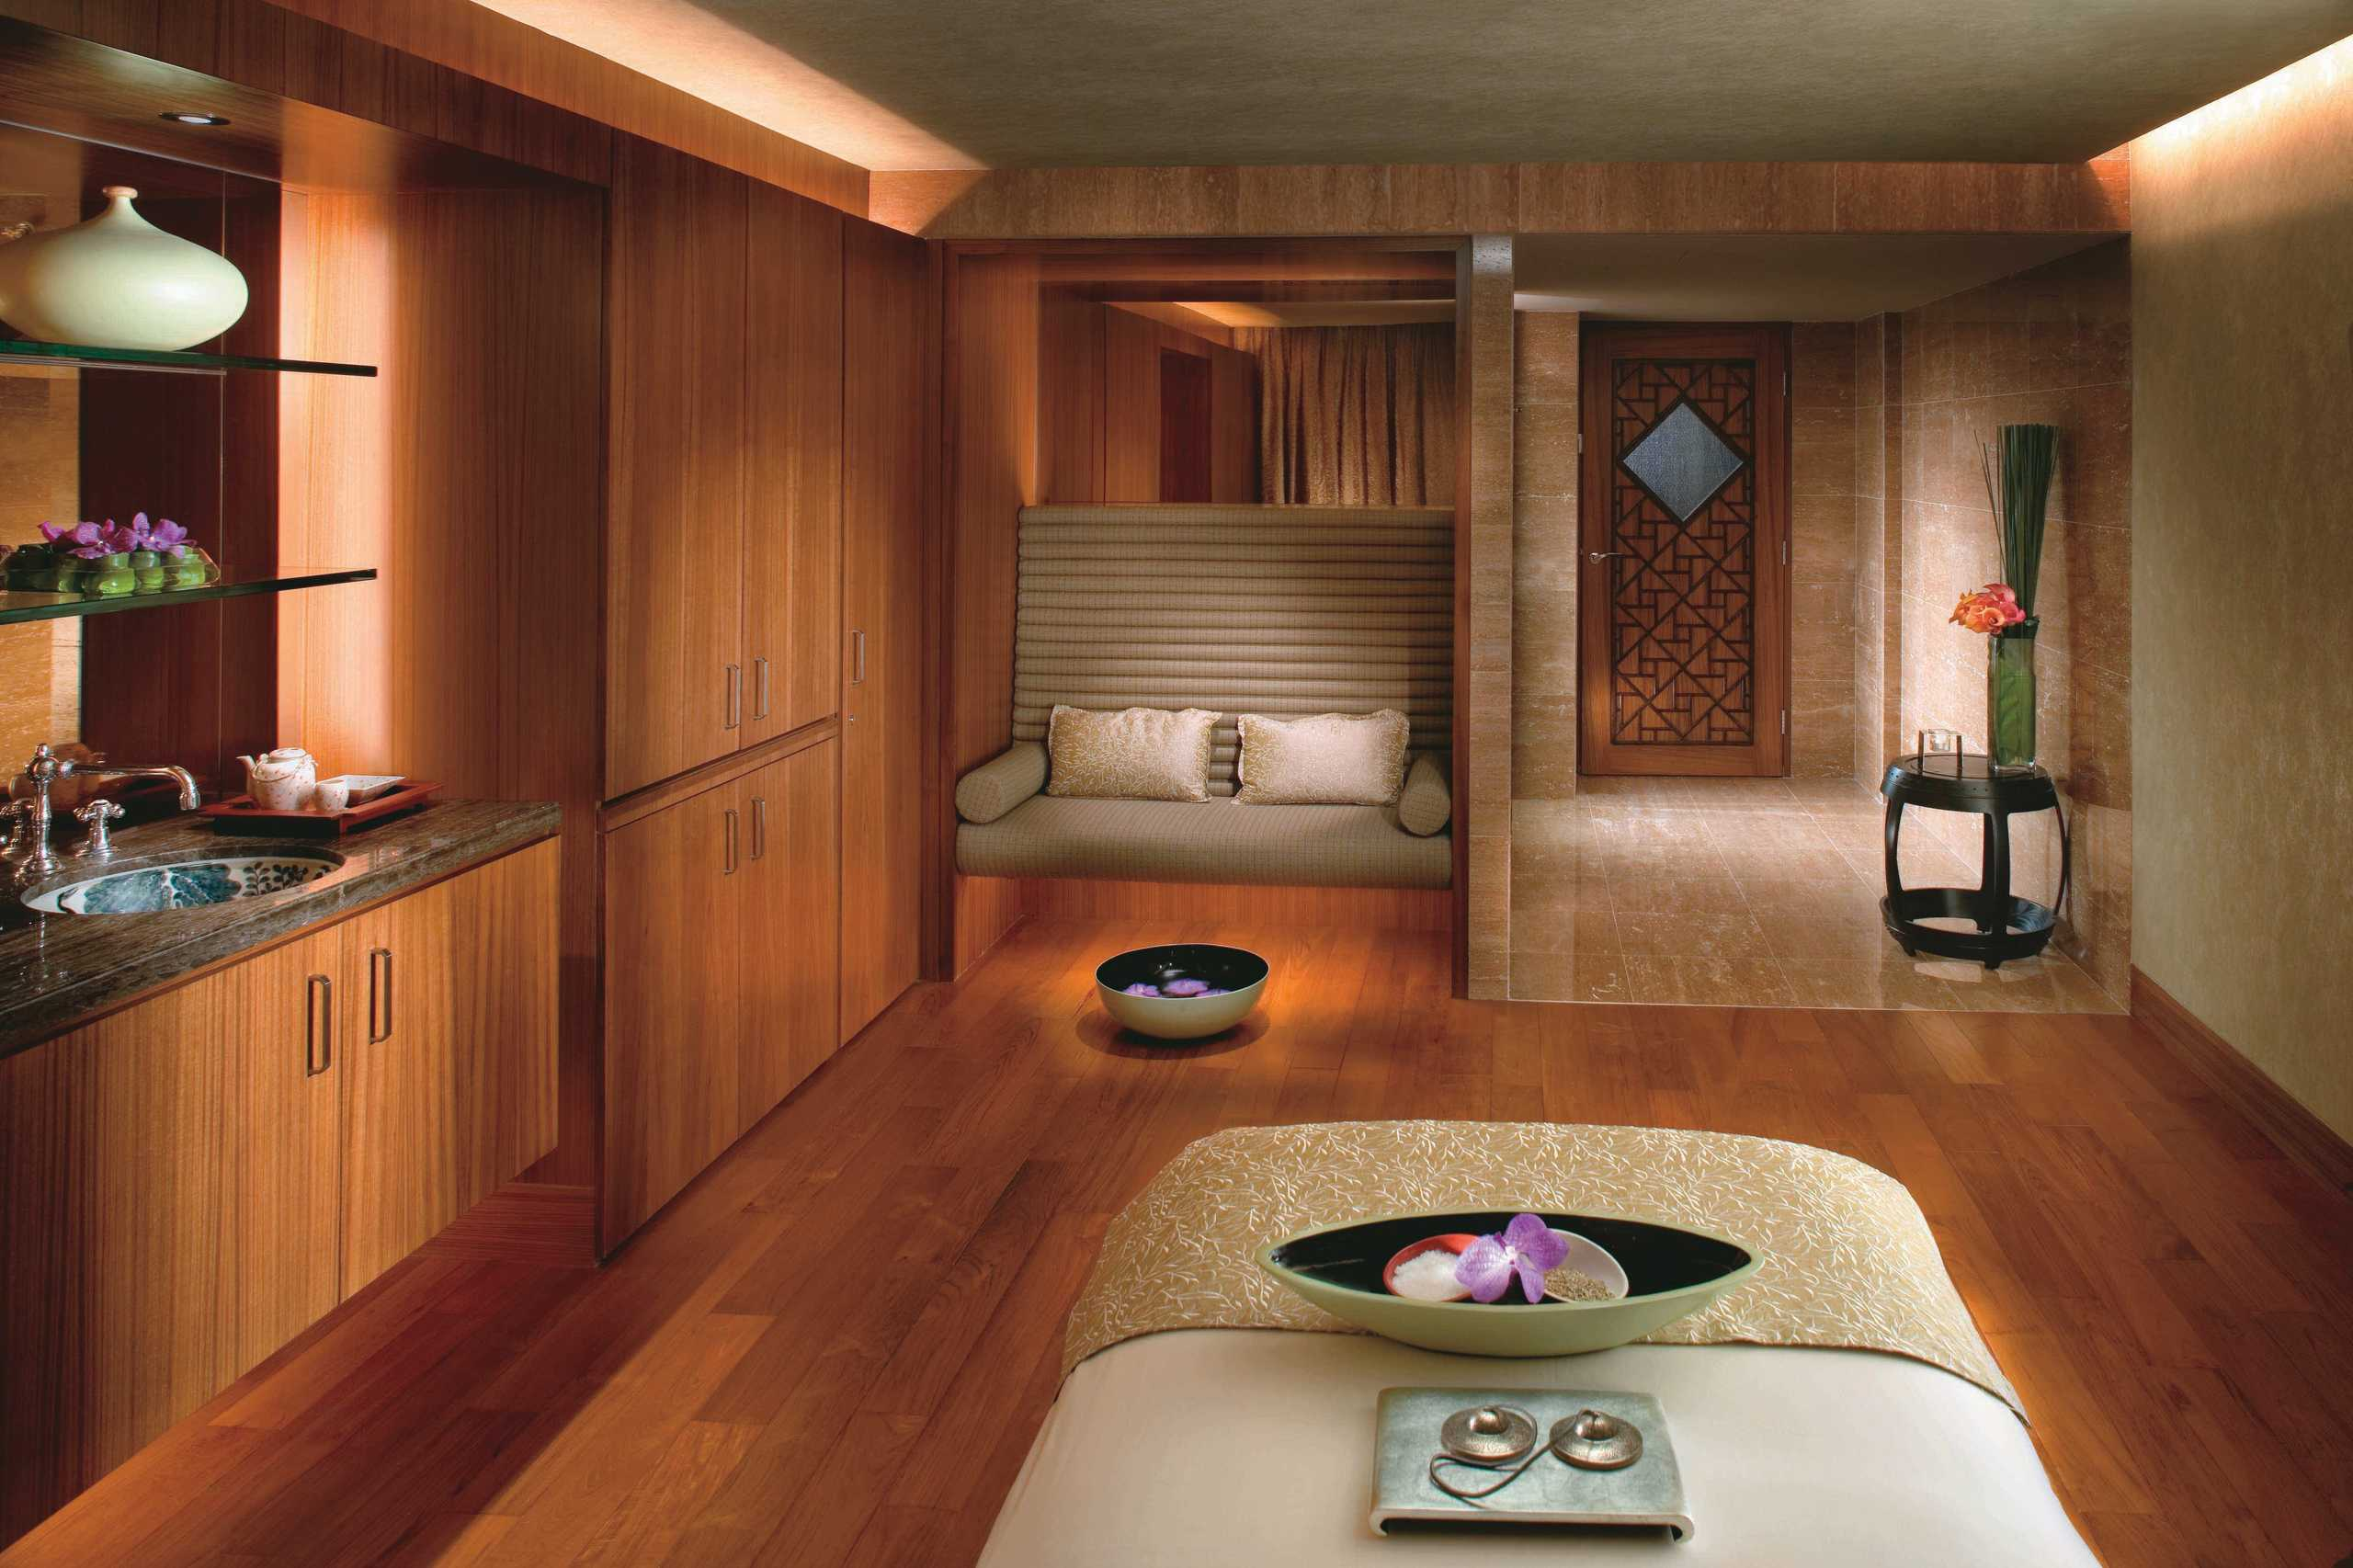 interior of spa at Mandarin oriental hong kong